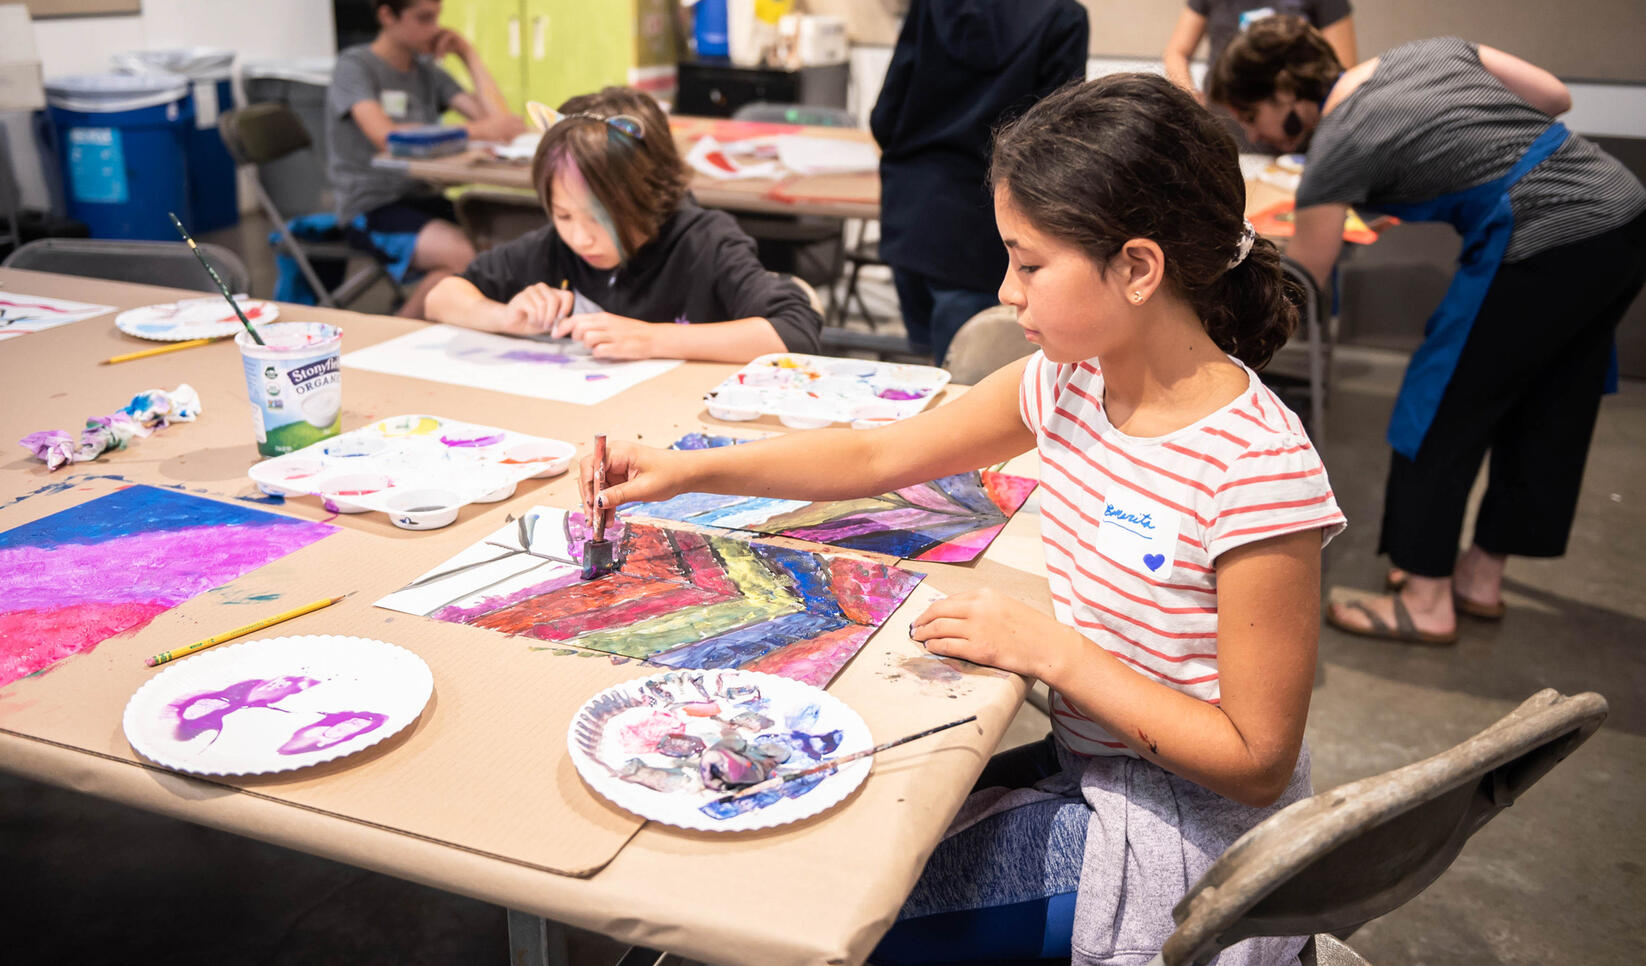 Student working on a painting at Summer Youth Camp